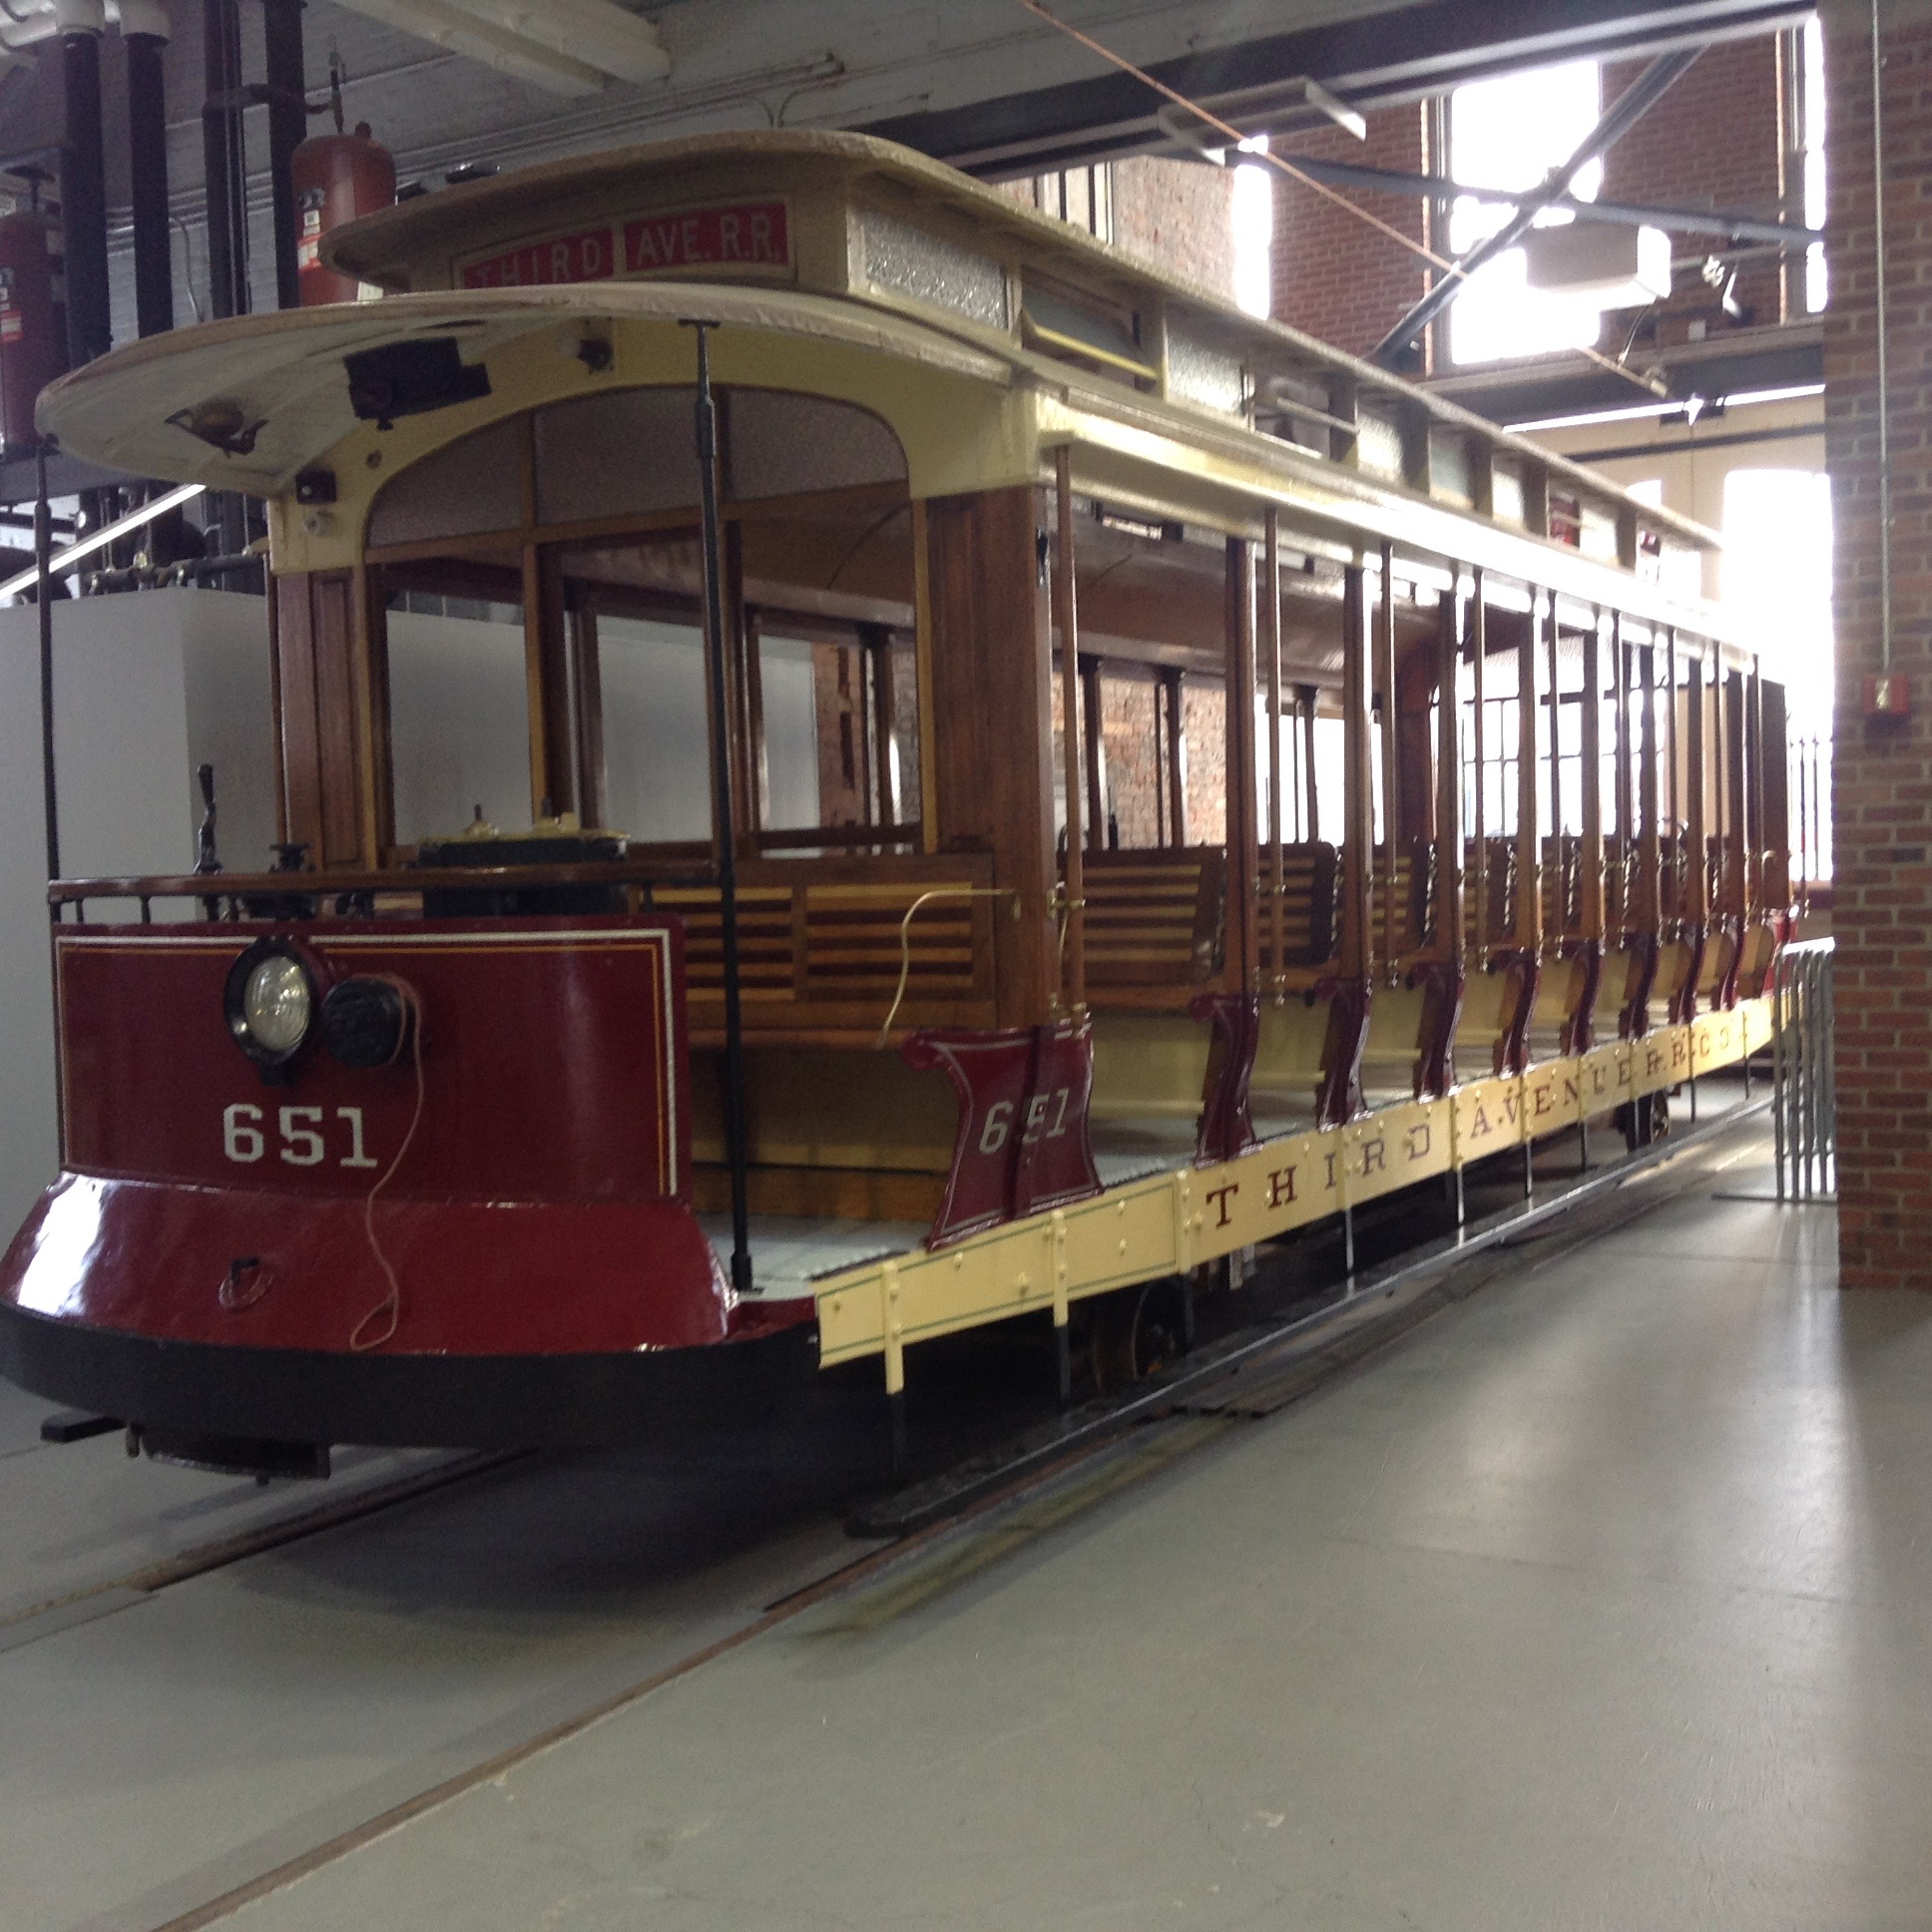 Open Car #651 at the Museum